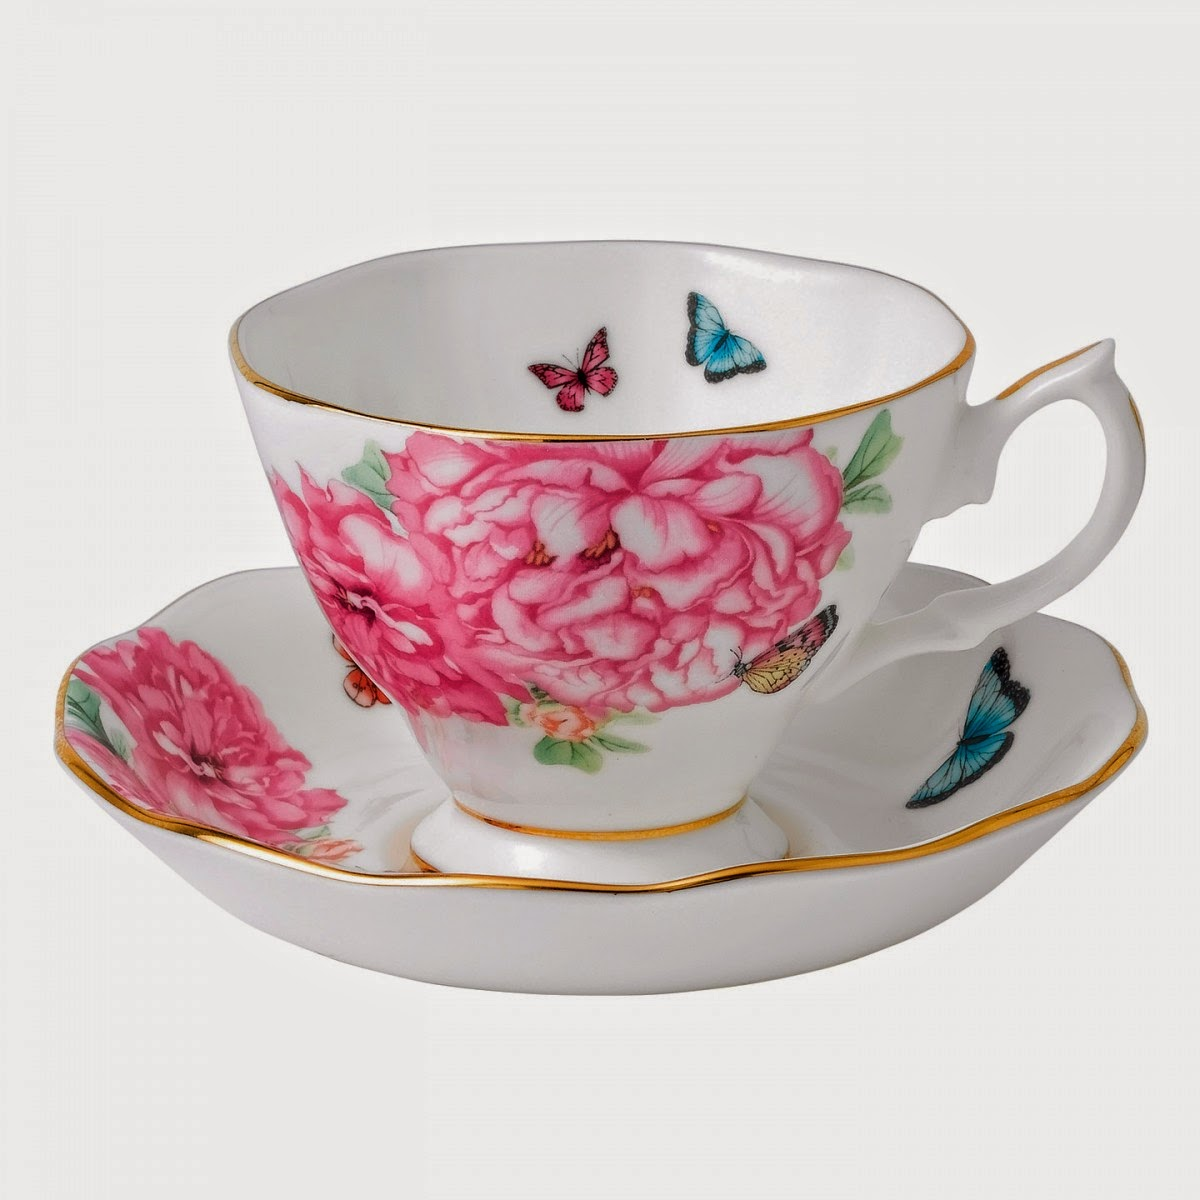 http://www.royalalbert.com/friendship-teacup-saucer